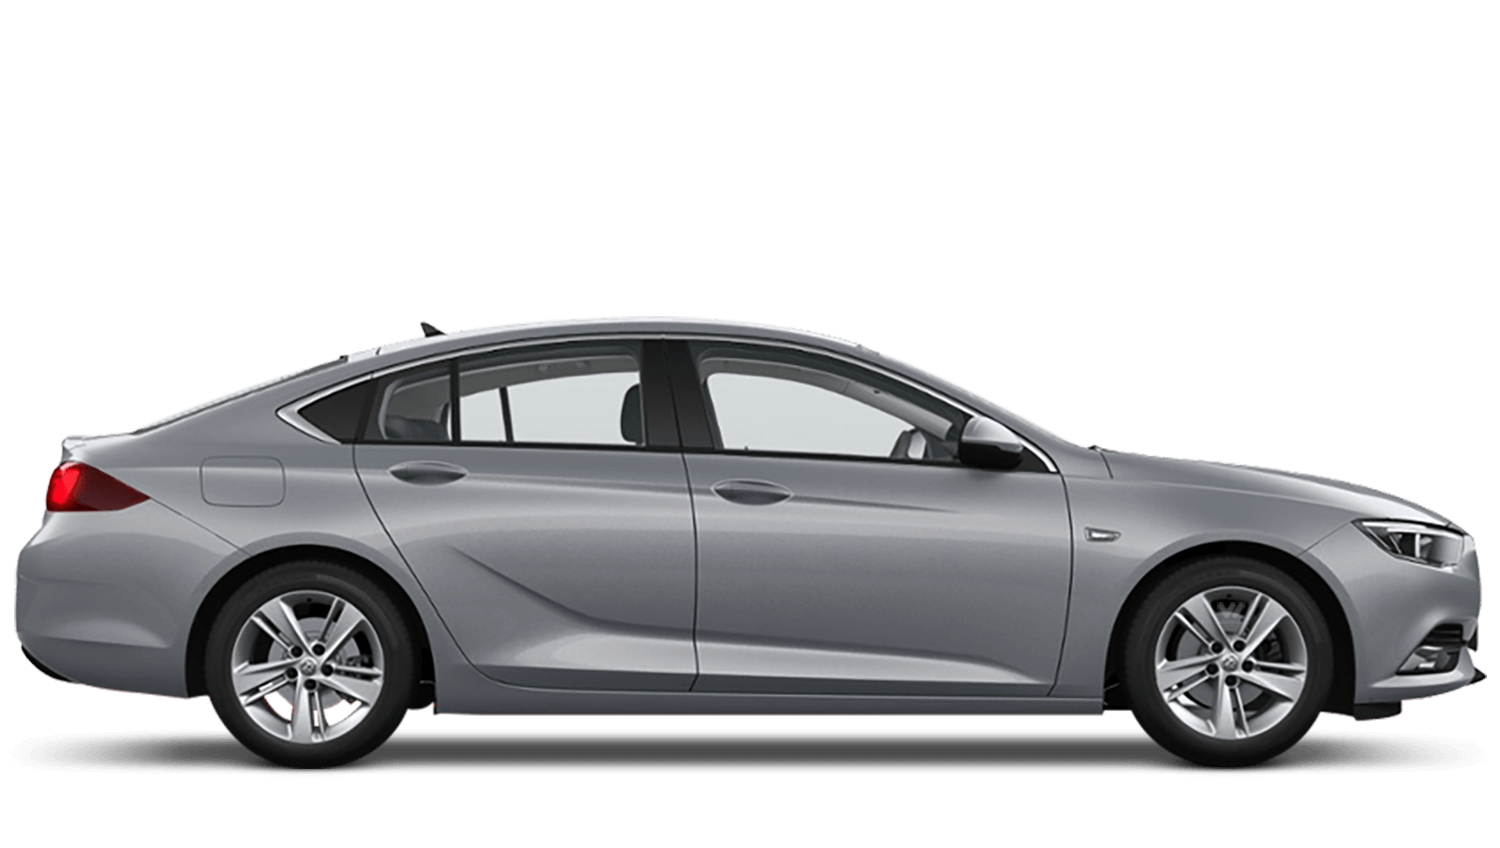 Satin Steel Grey (Metallic) Vauxhall Insignia Grand Sport